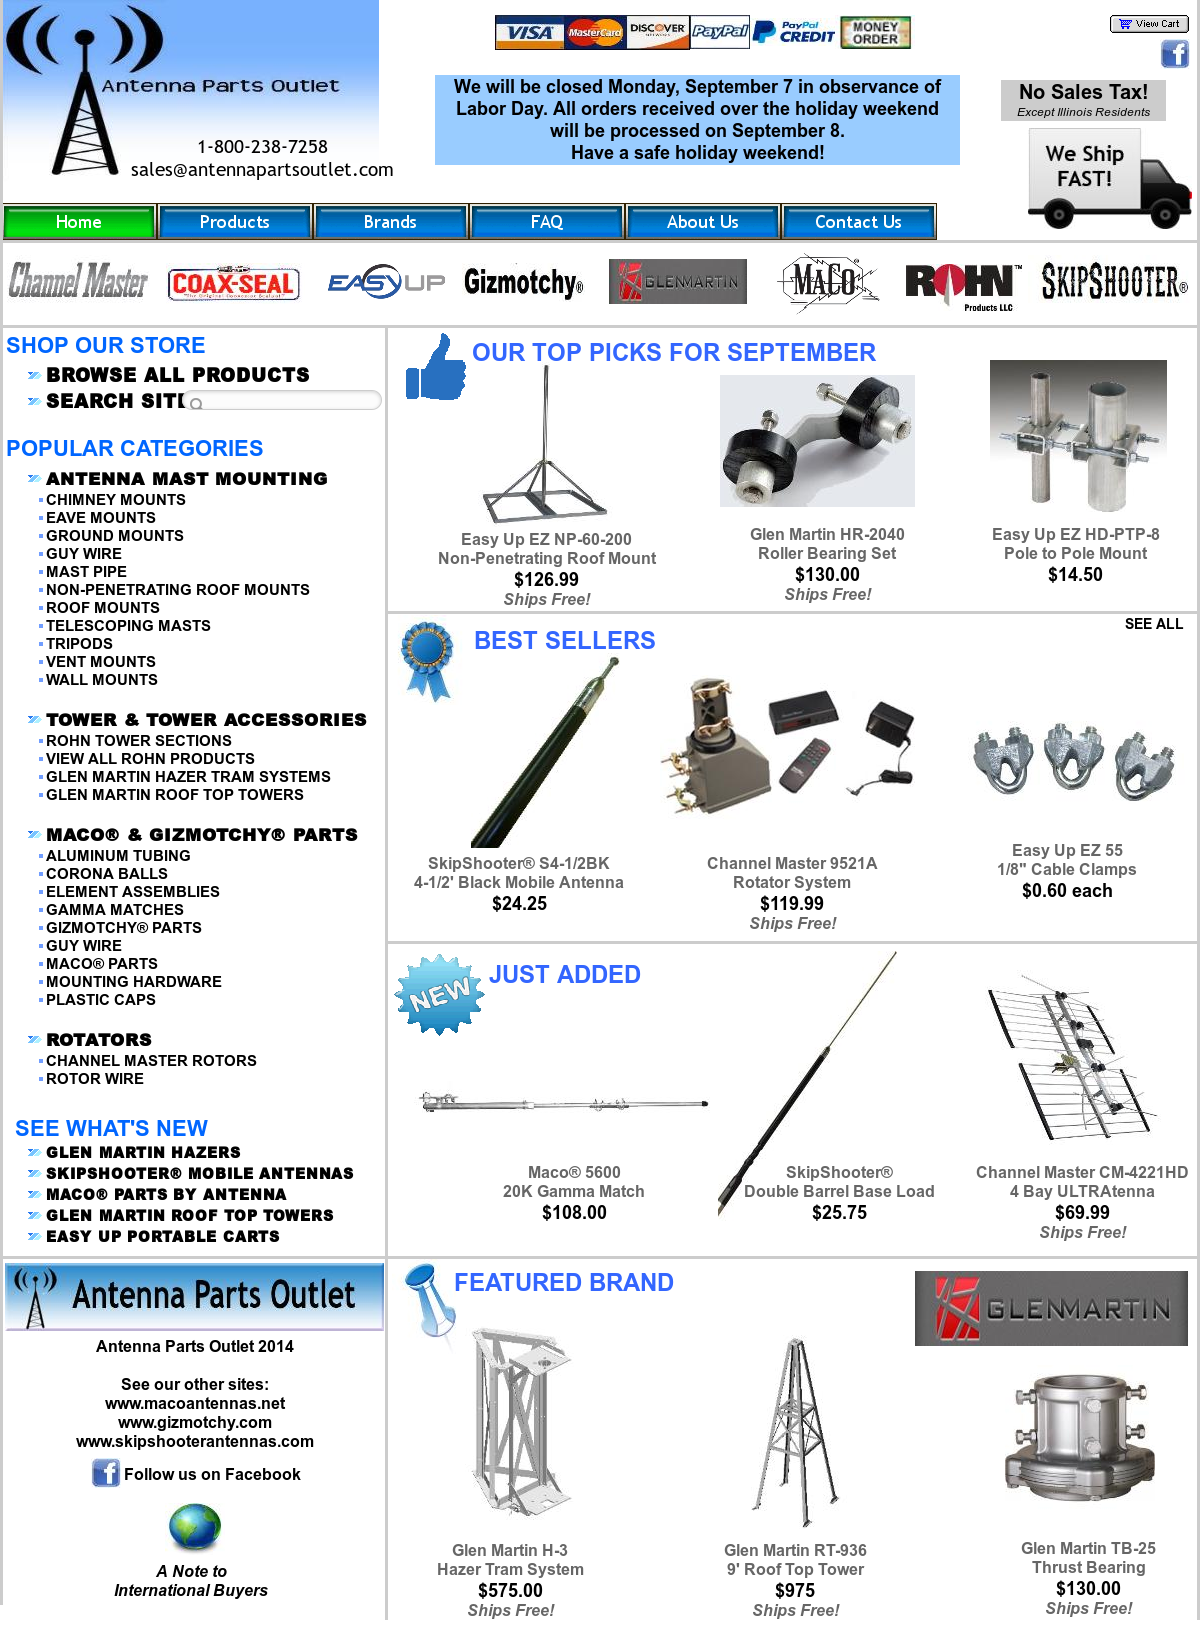 Antenna Parts Outlet Competitors, Revenue and Employees - Owler